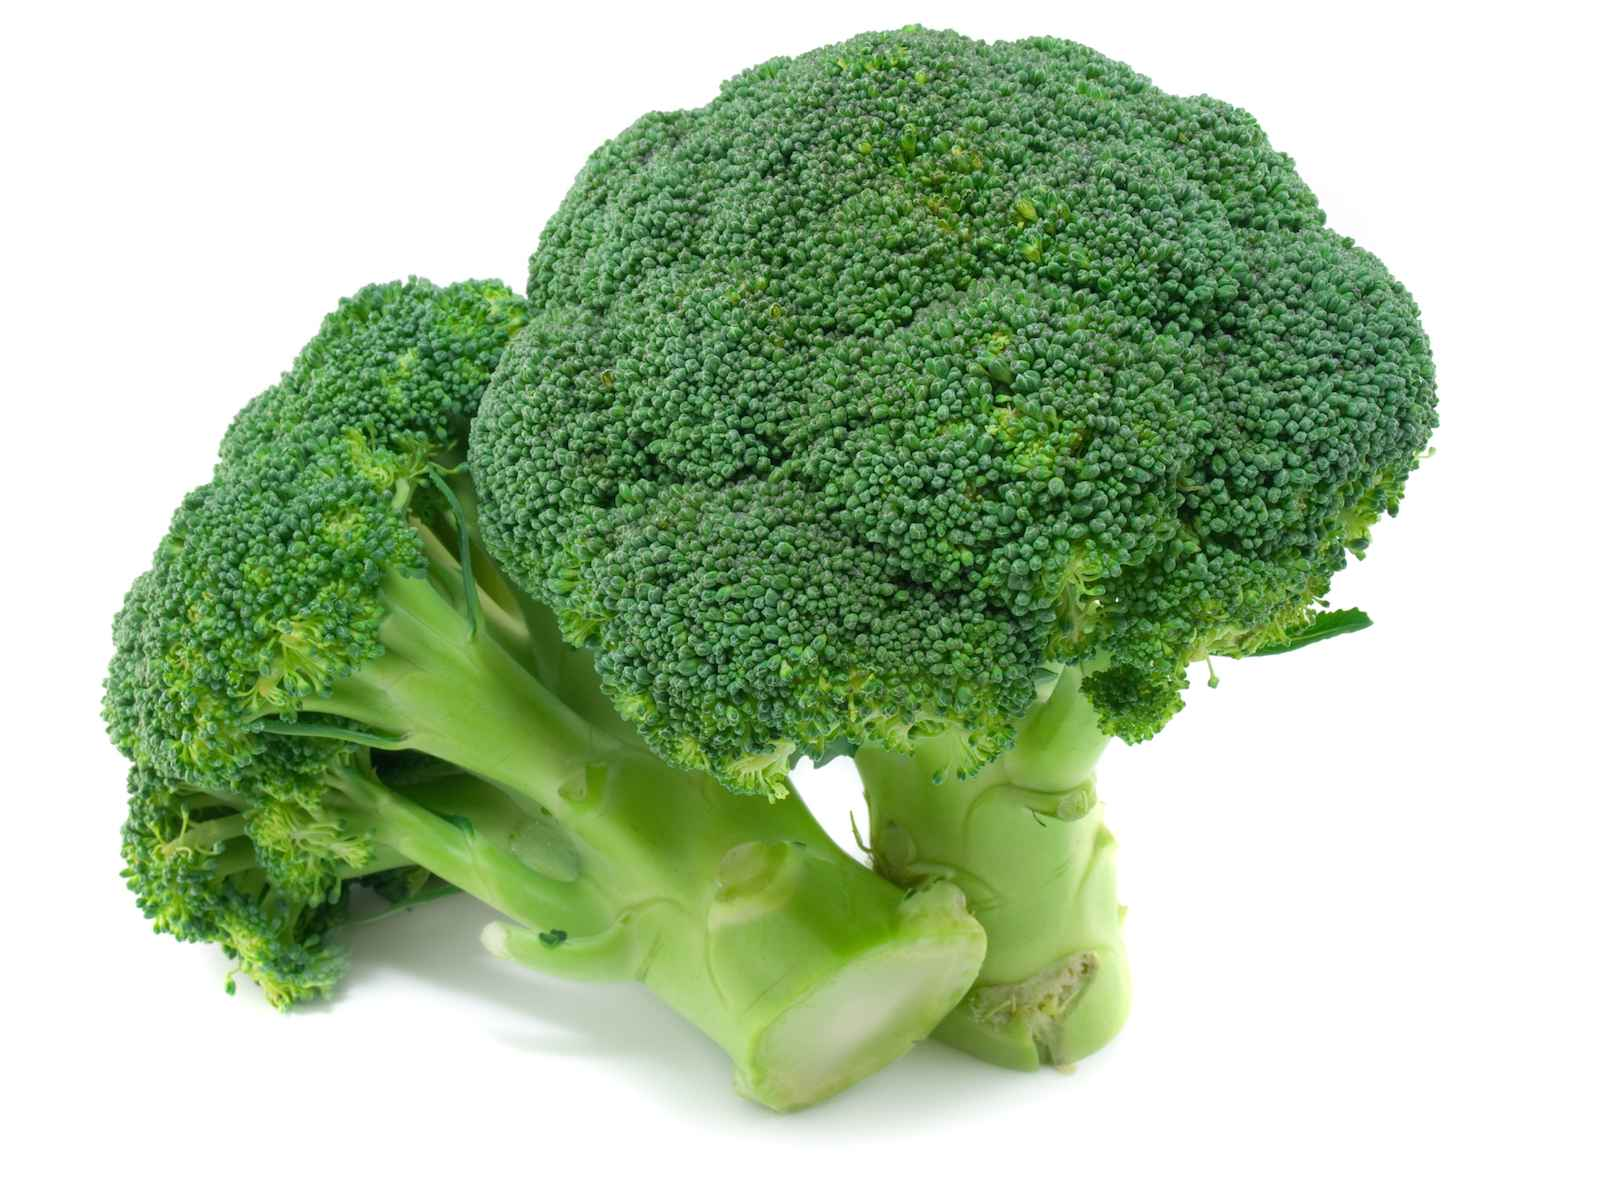 Broccoli (1 bunch) (1 lb aprox)